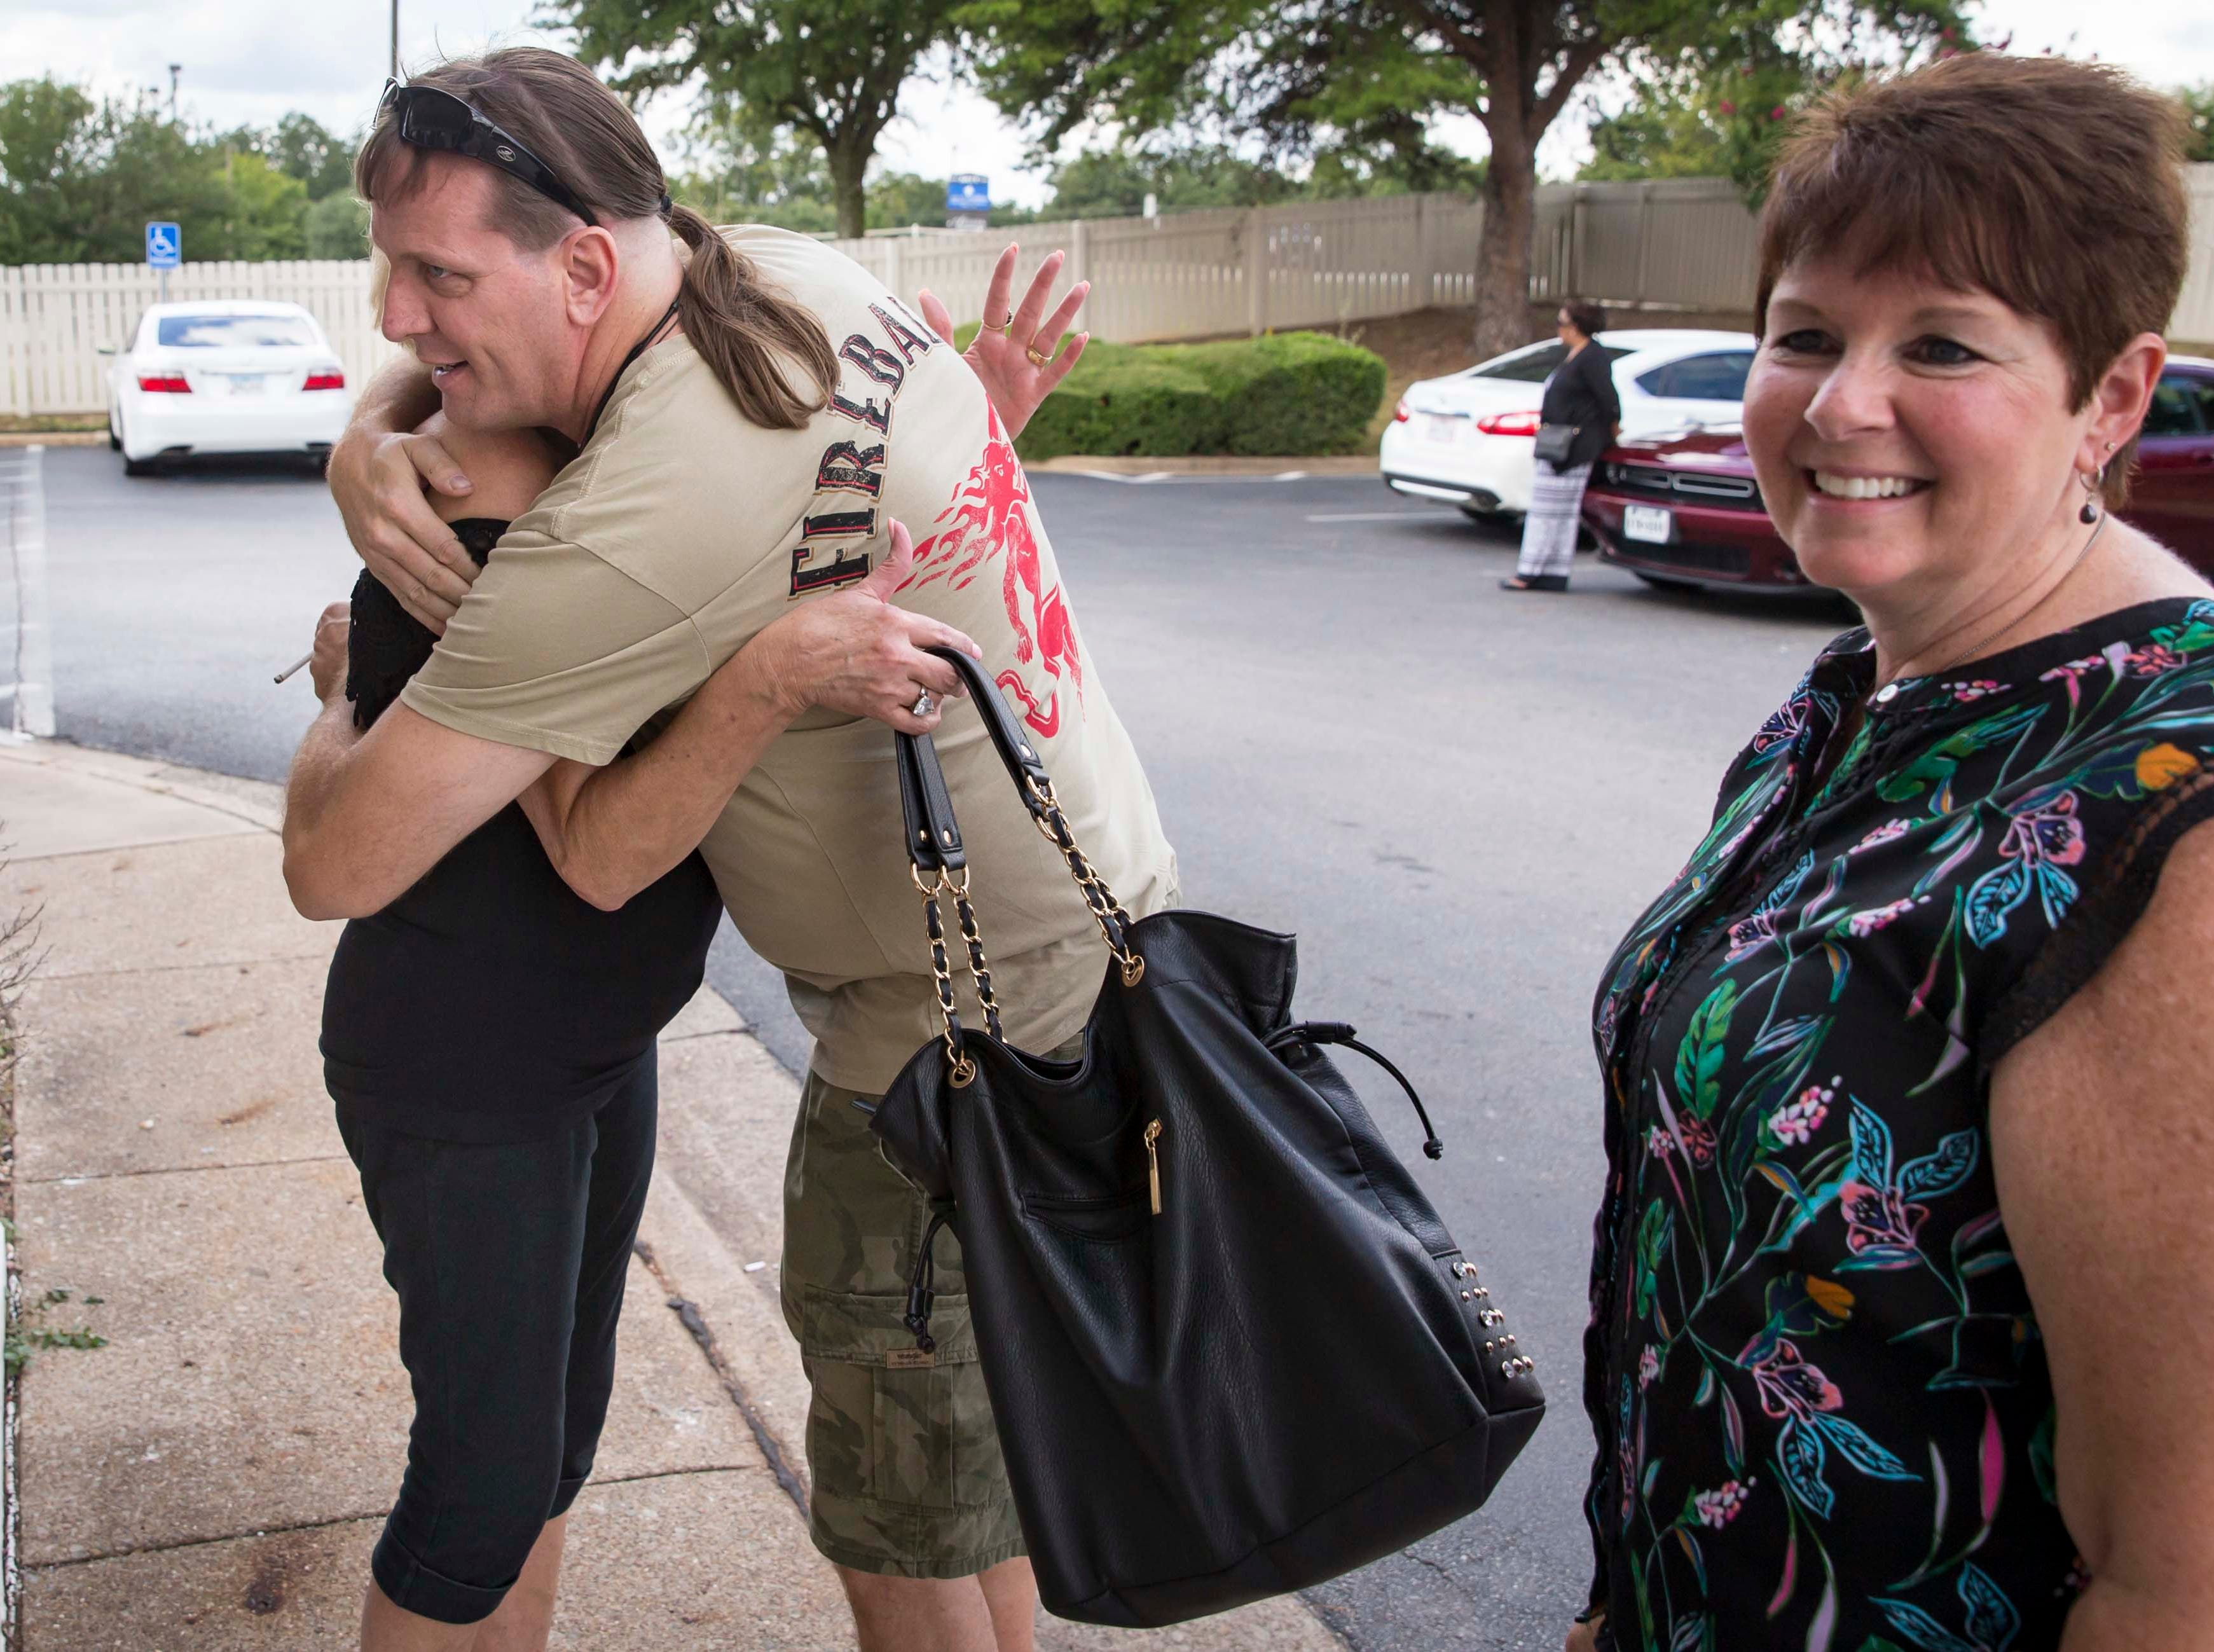 Wade Mulligan of Las Vegas, greets his half-sister Shelia Barron Jenkins of Dallas, Texas, for the first time in Tyler, Texas, Saturday, Sept. 1, 2018. At right is their half-sister Connie Hoye.